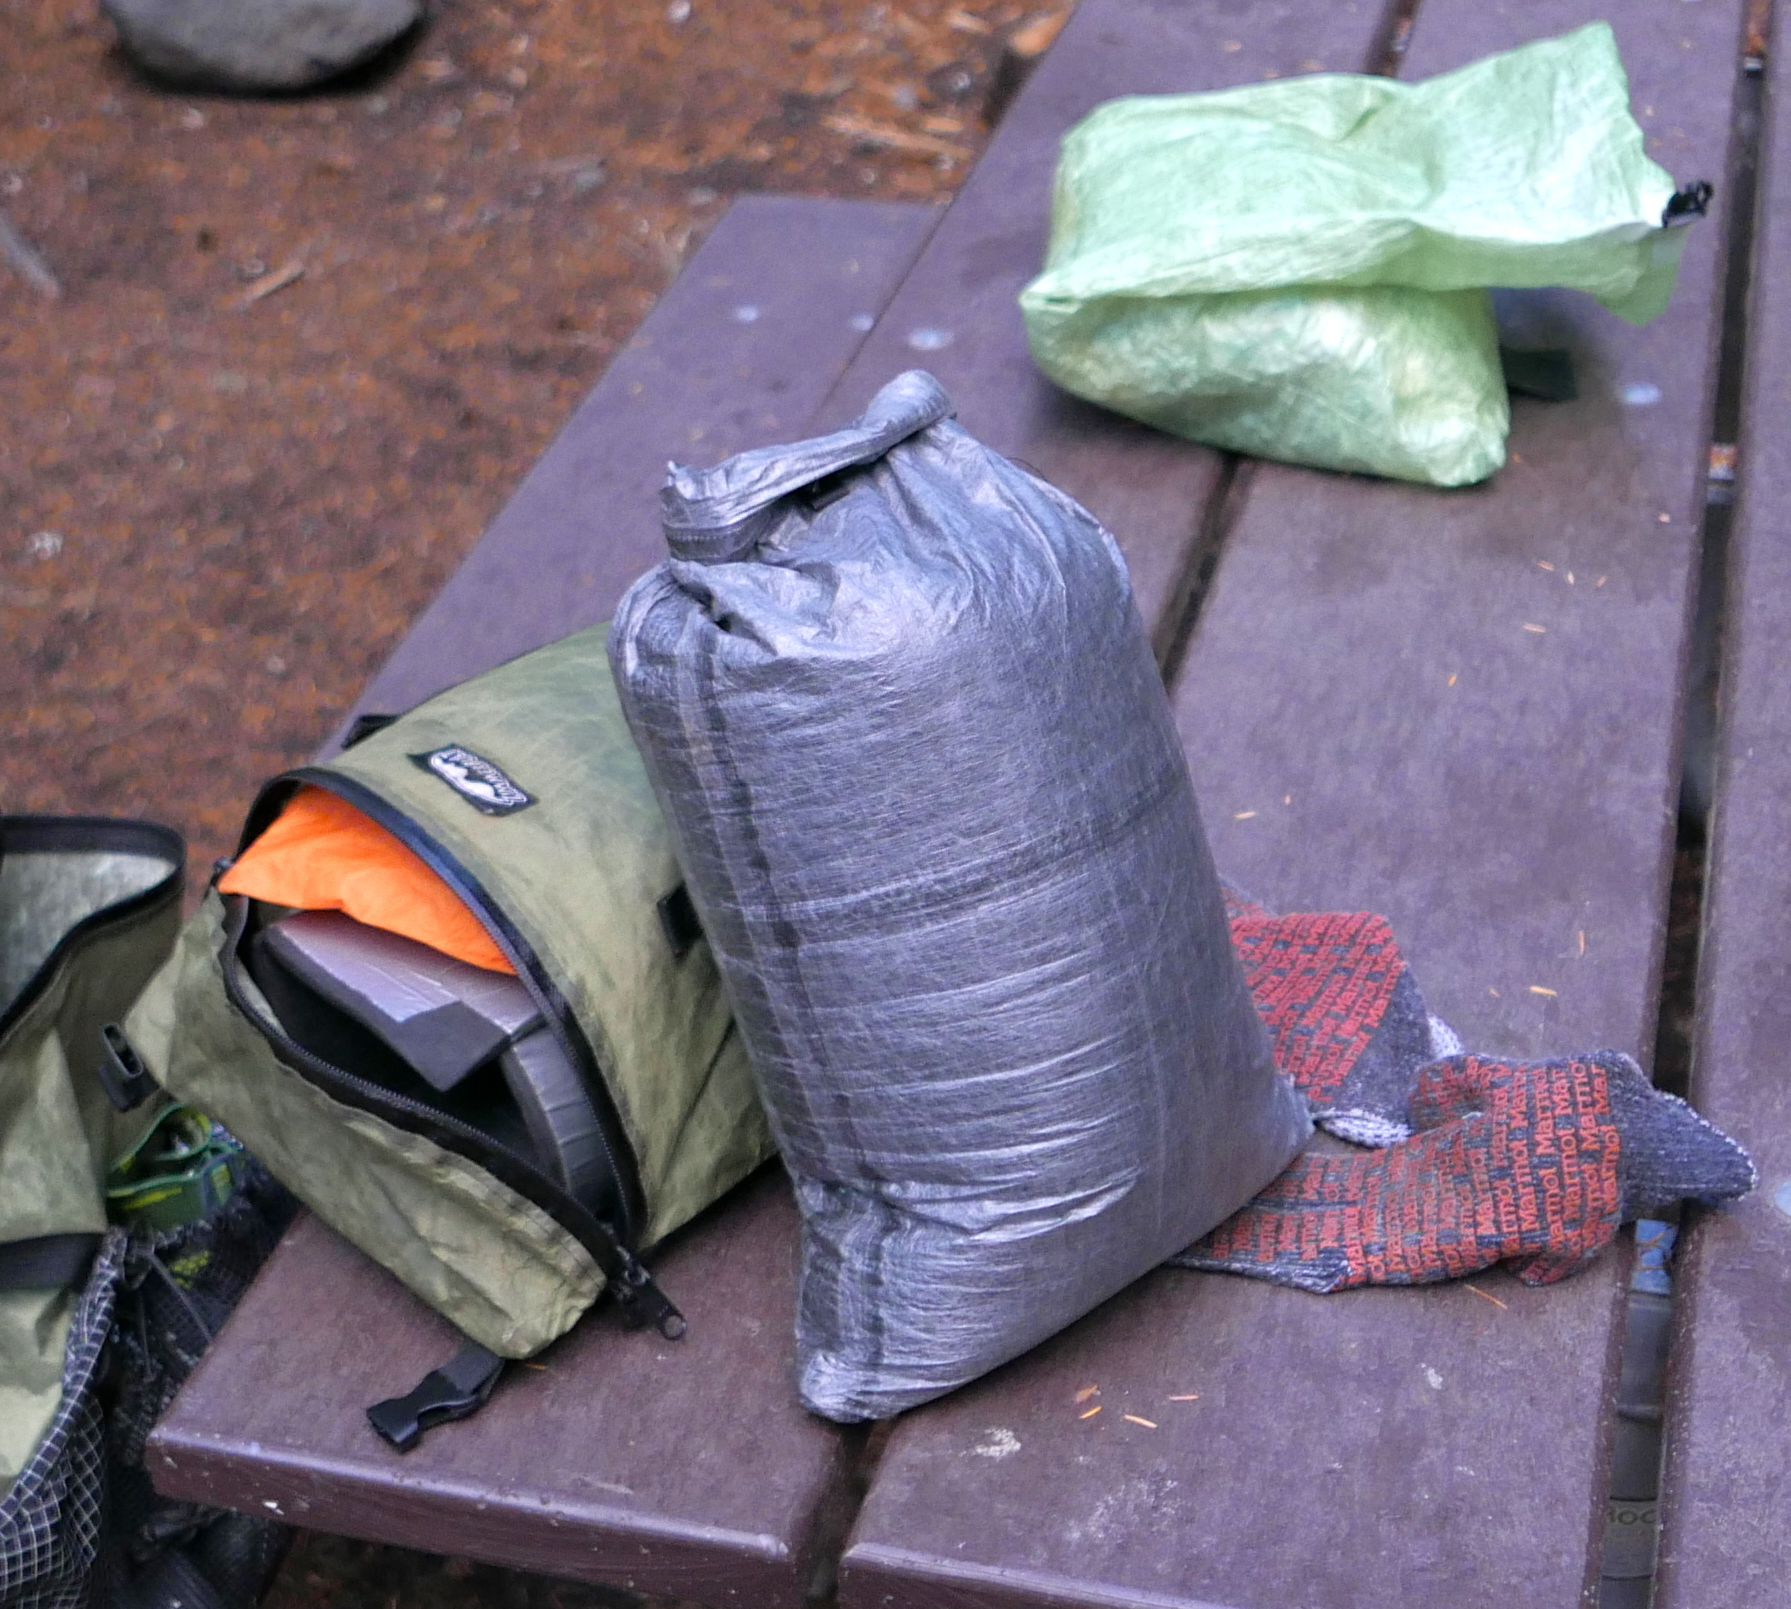 stuff sack containing EE 50 degree Enigma quilt, Borah Gear down jacket, EE booties and Hoodlum